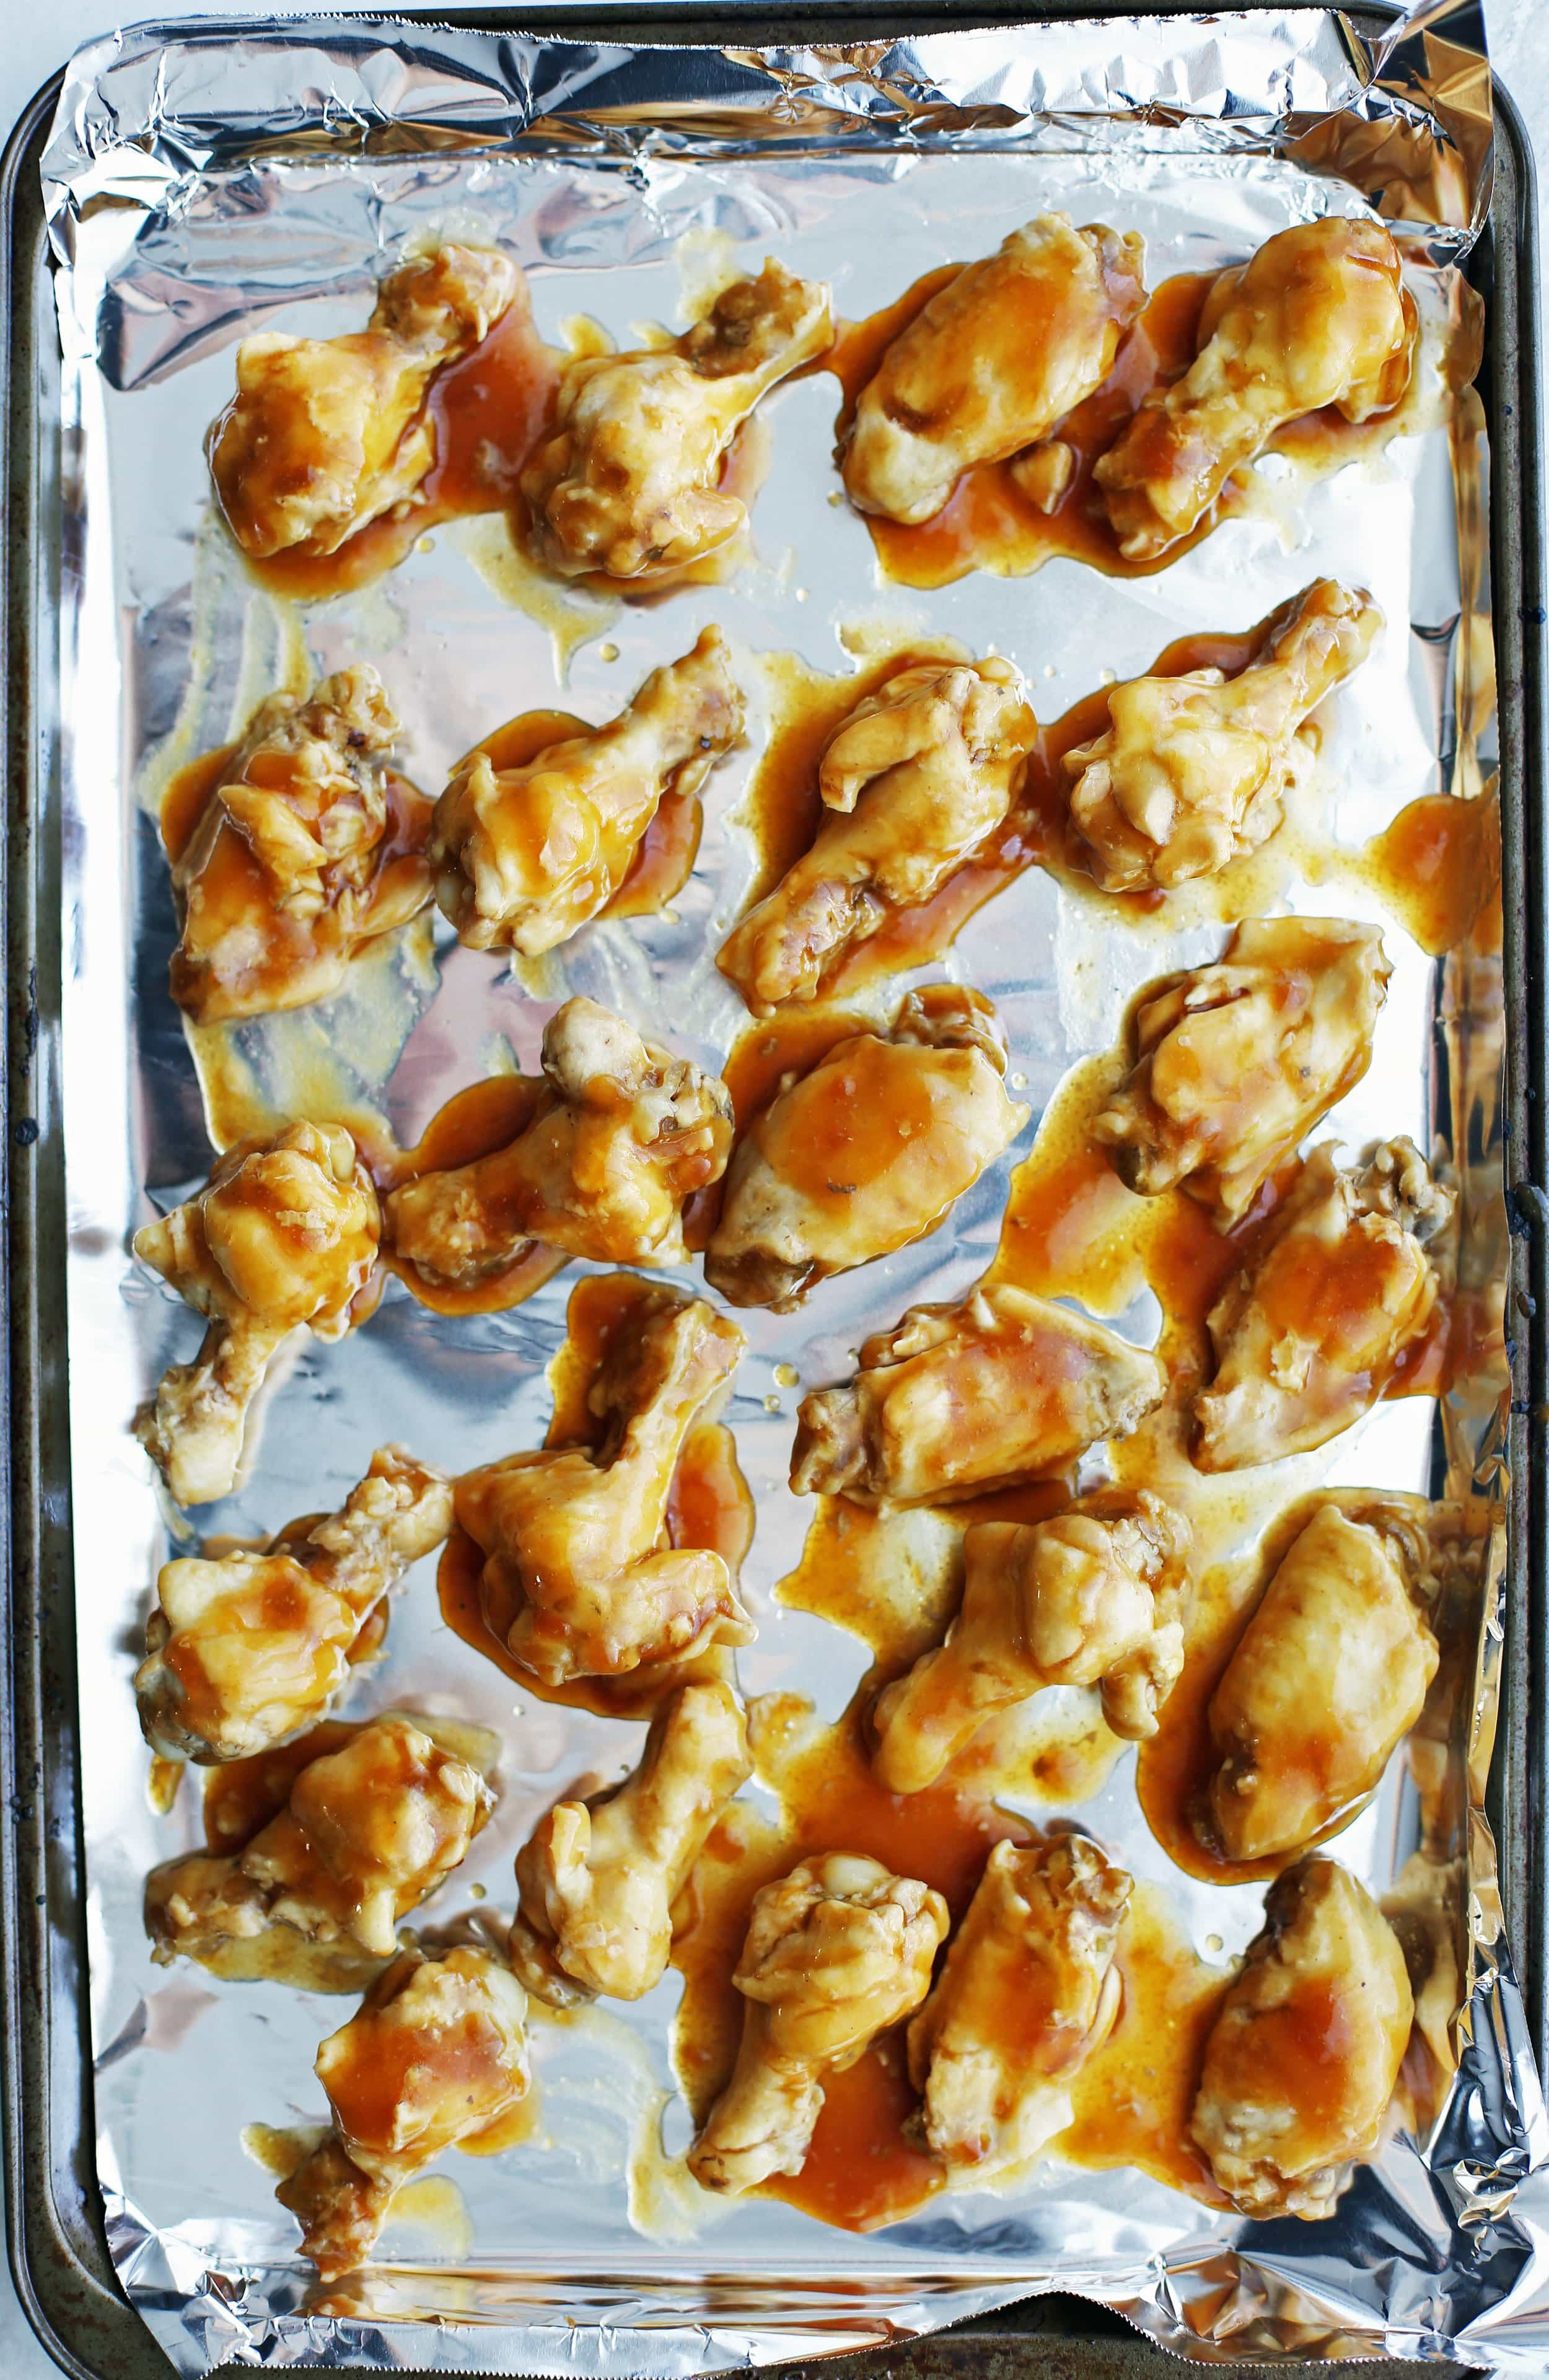 Cooked chicken wings coated with orange teriyaki sauce is placed on a baking sheet in a single layer.